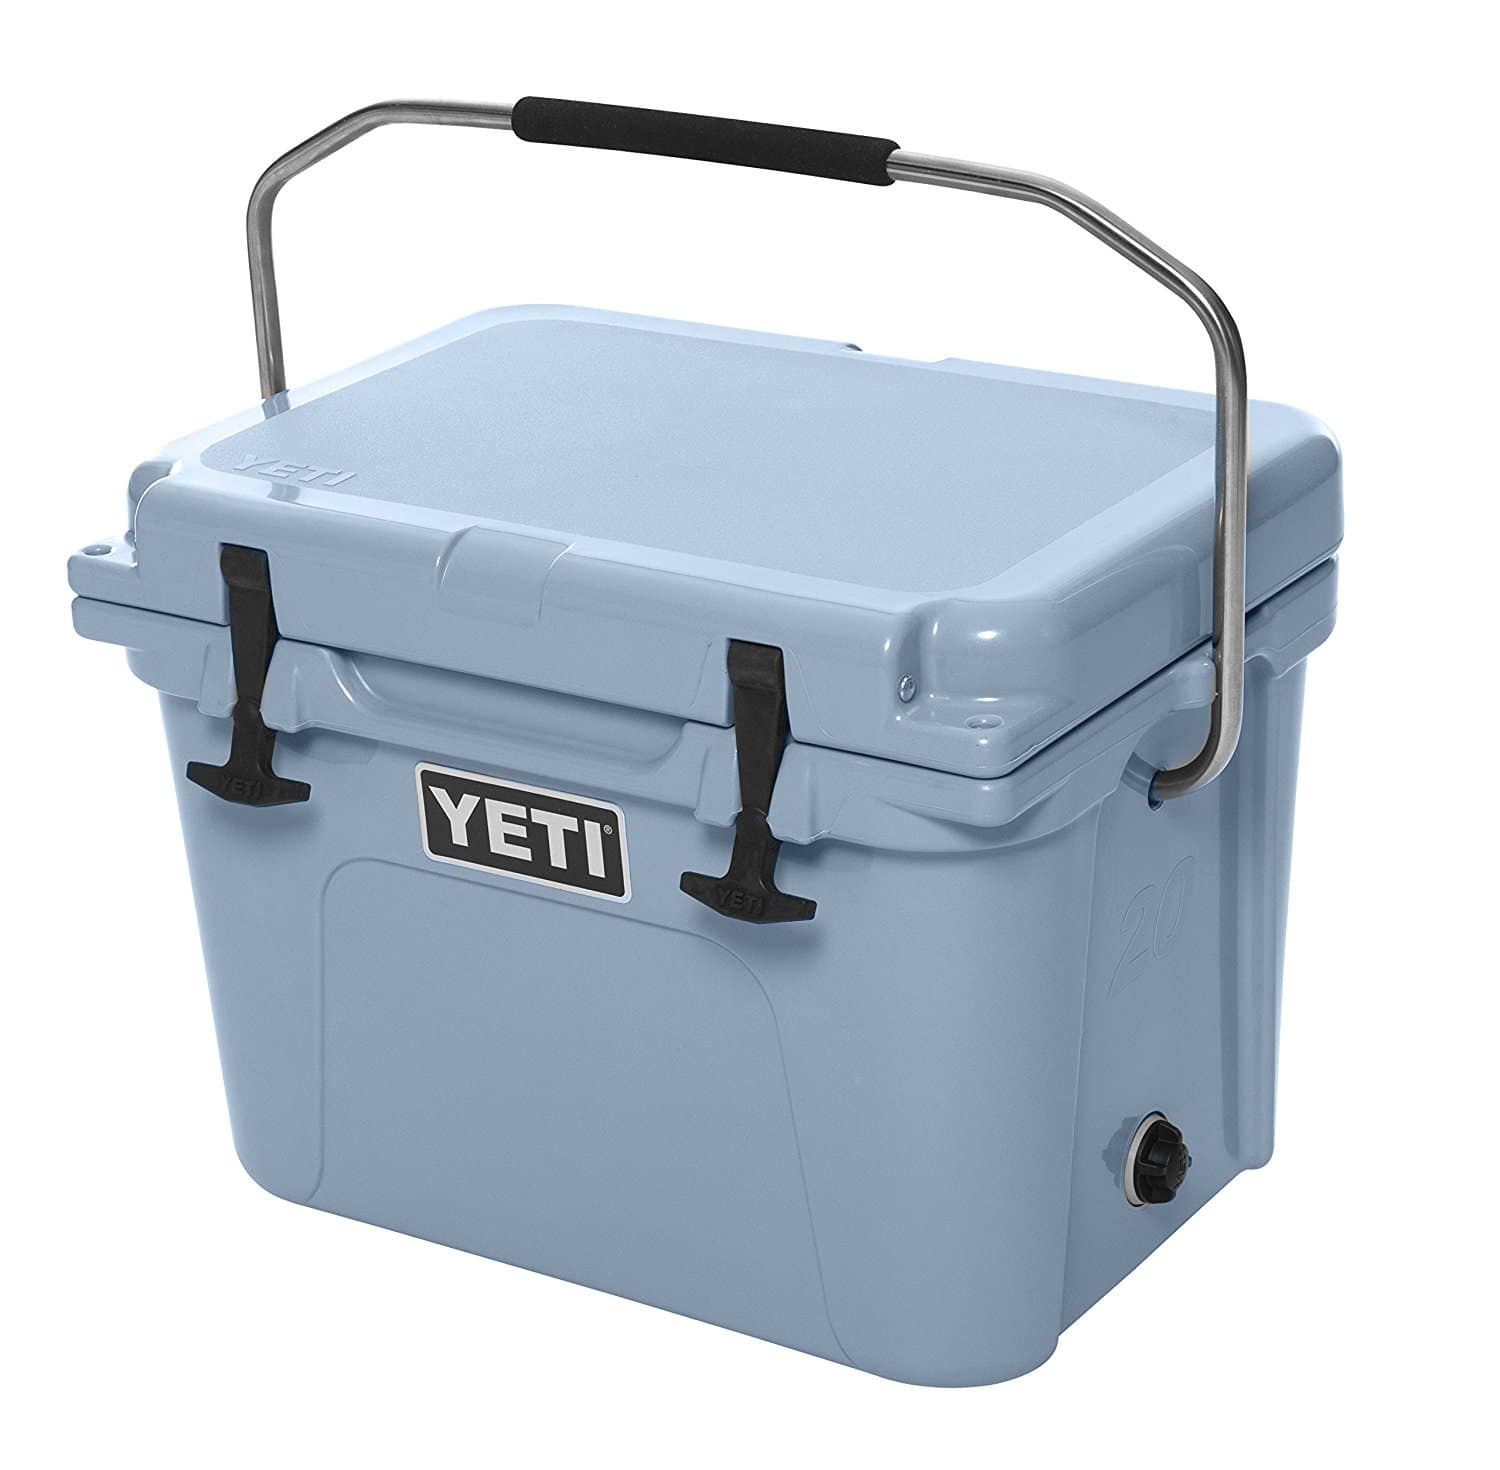 Best Yeti Cooler 2018: Yeti Roadie 20 Cooler